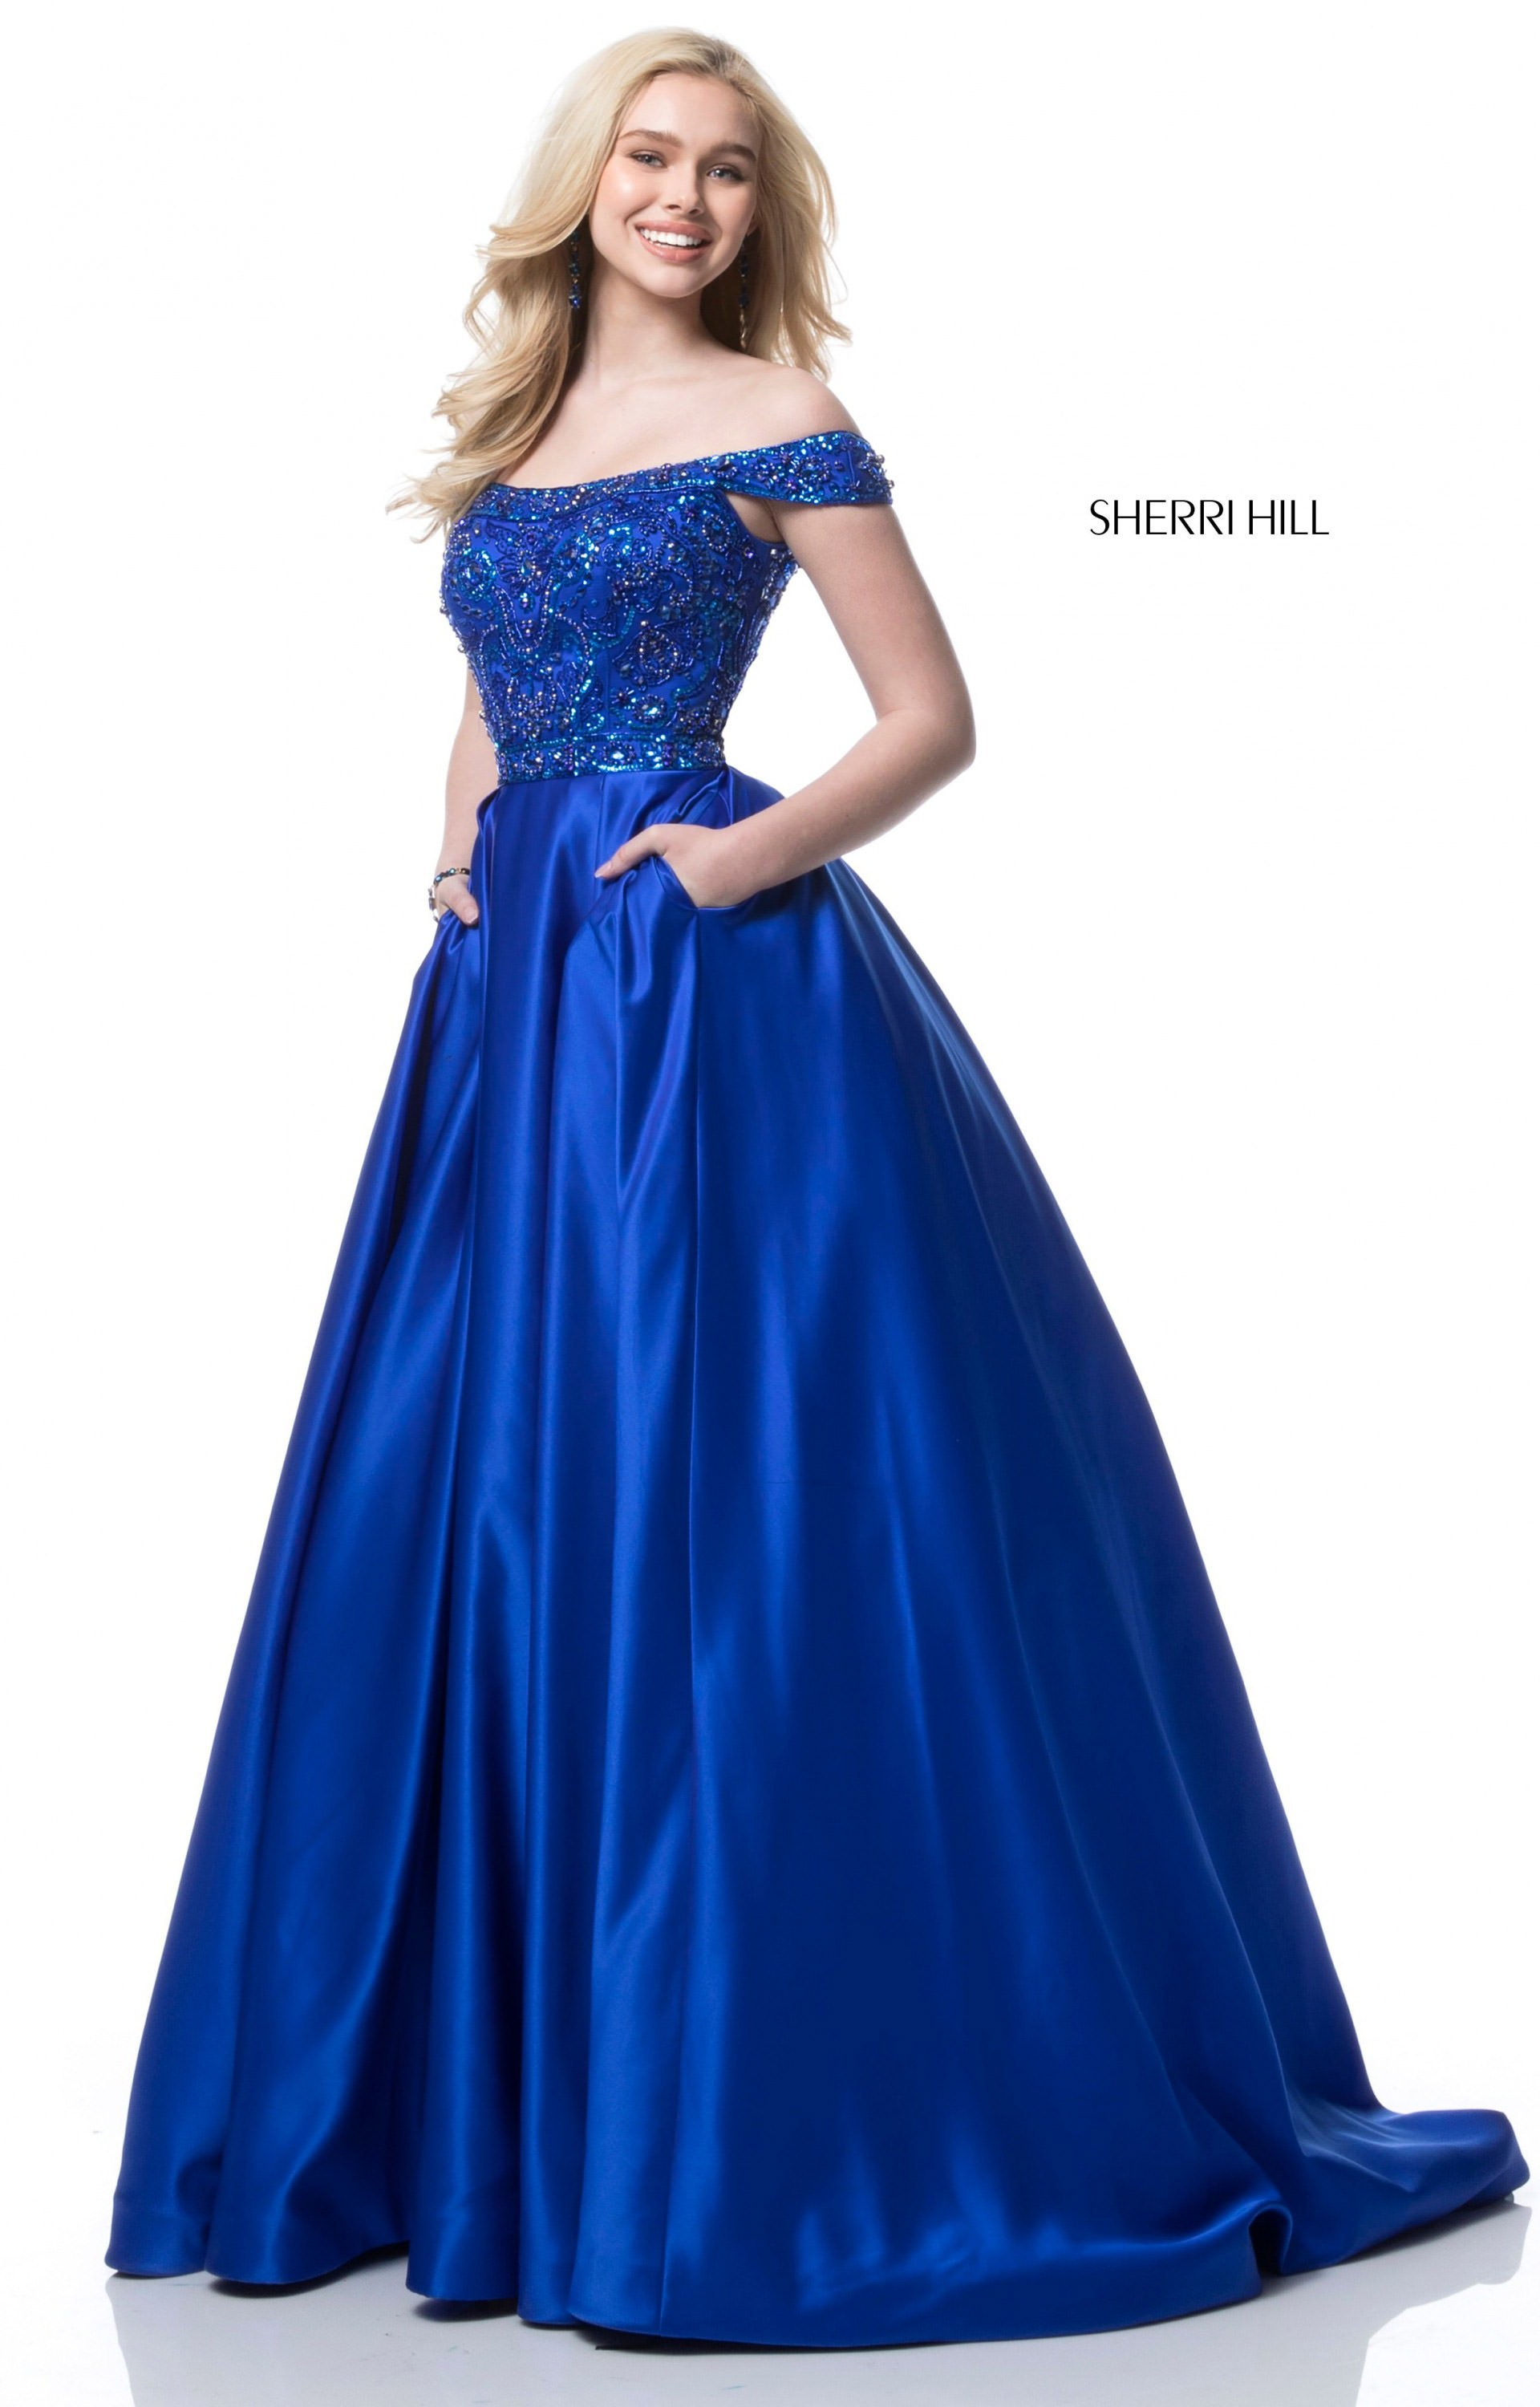 Sherri Hill 51610  Off the Shoulder Satin Ball Gown Prom Dress